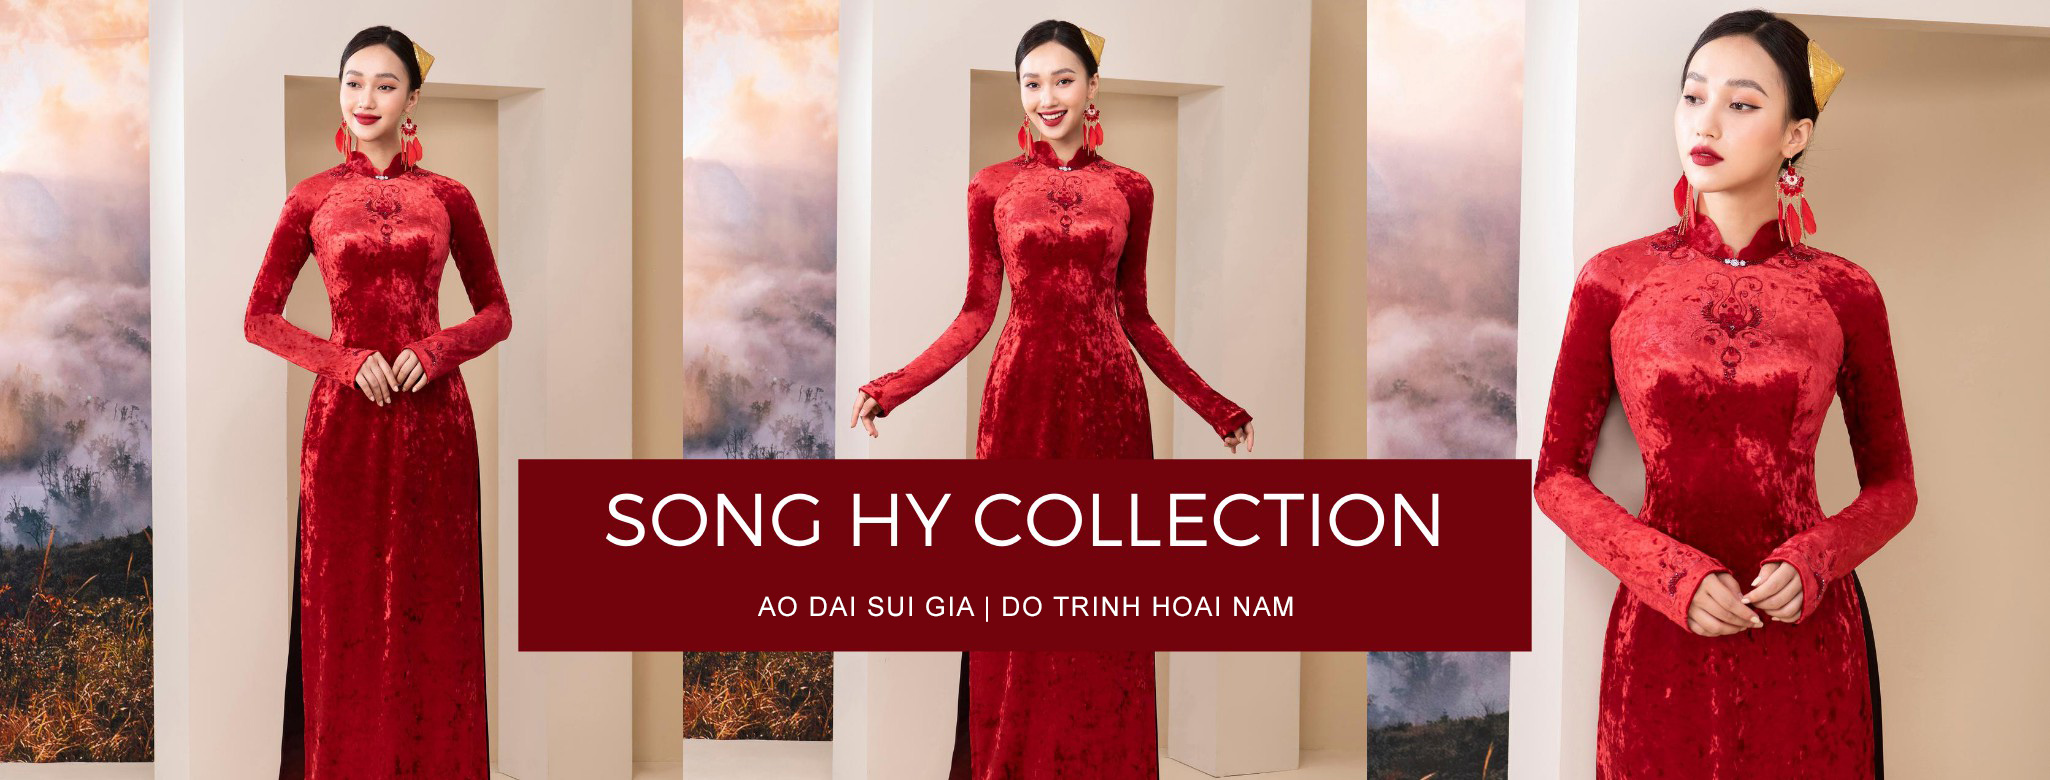 SONG HY COLLECTION